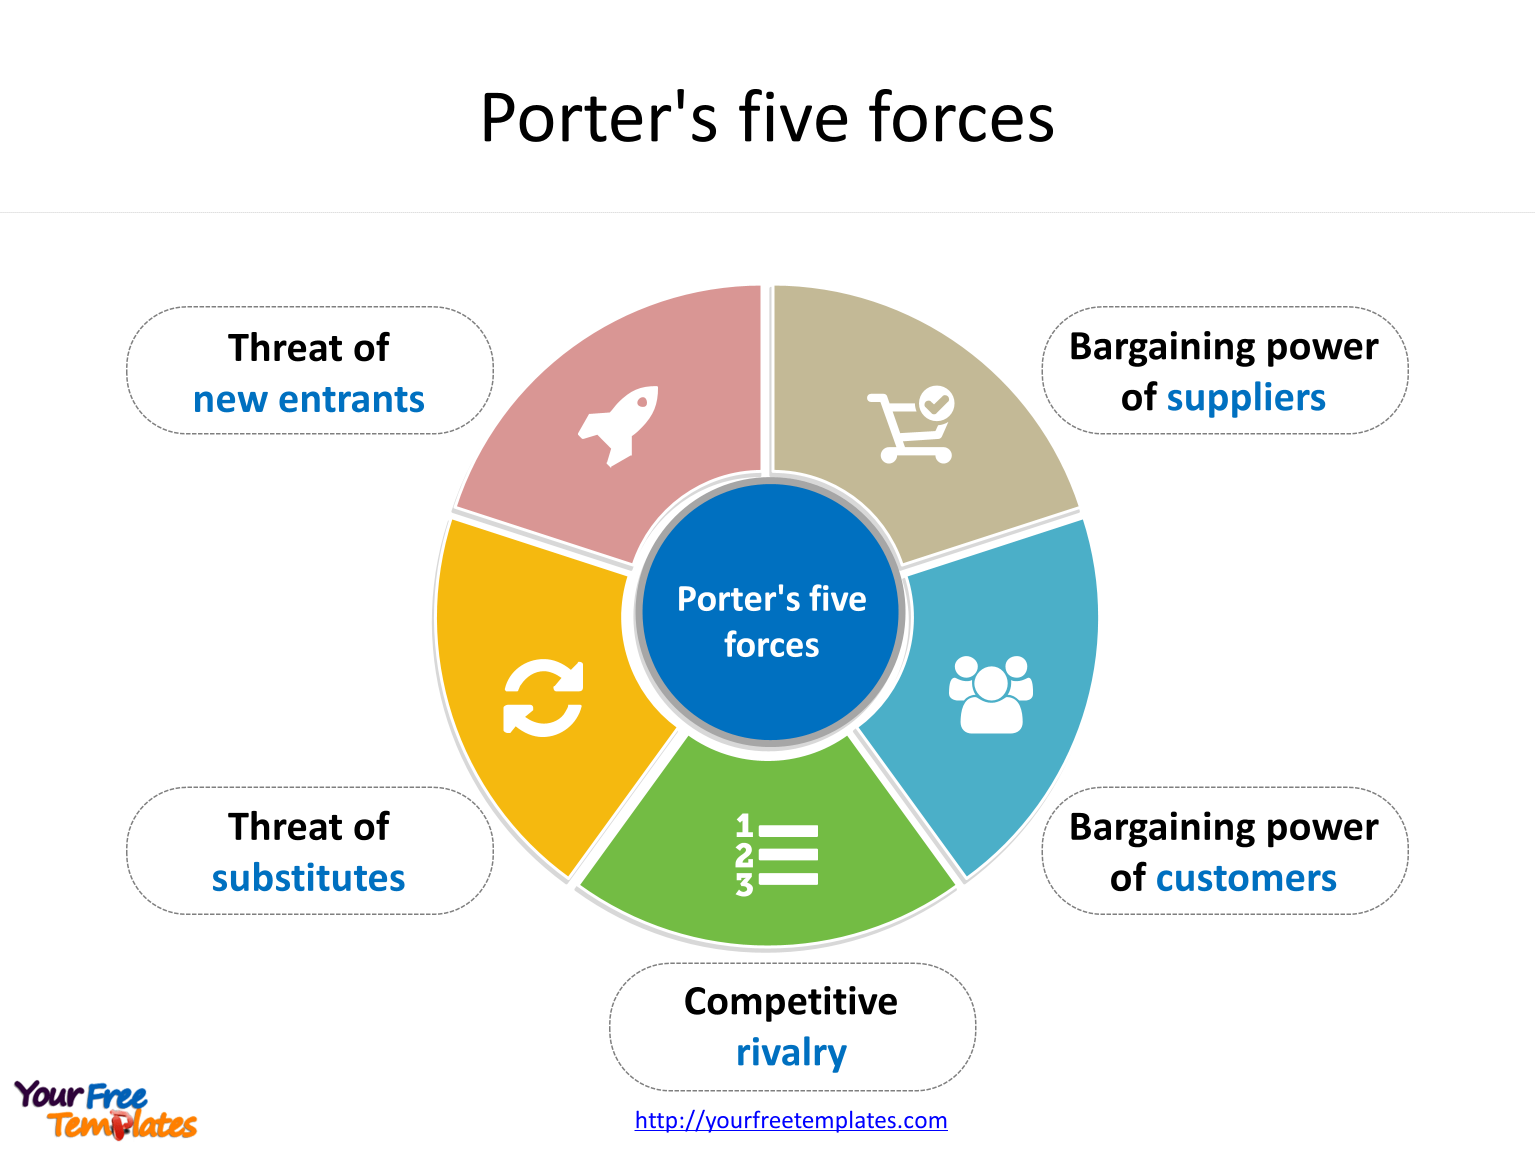 Porters five forces template - Free PowerPoint Template